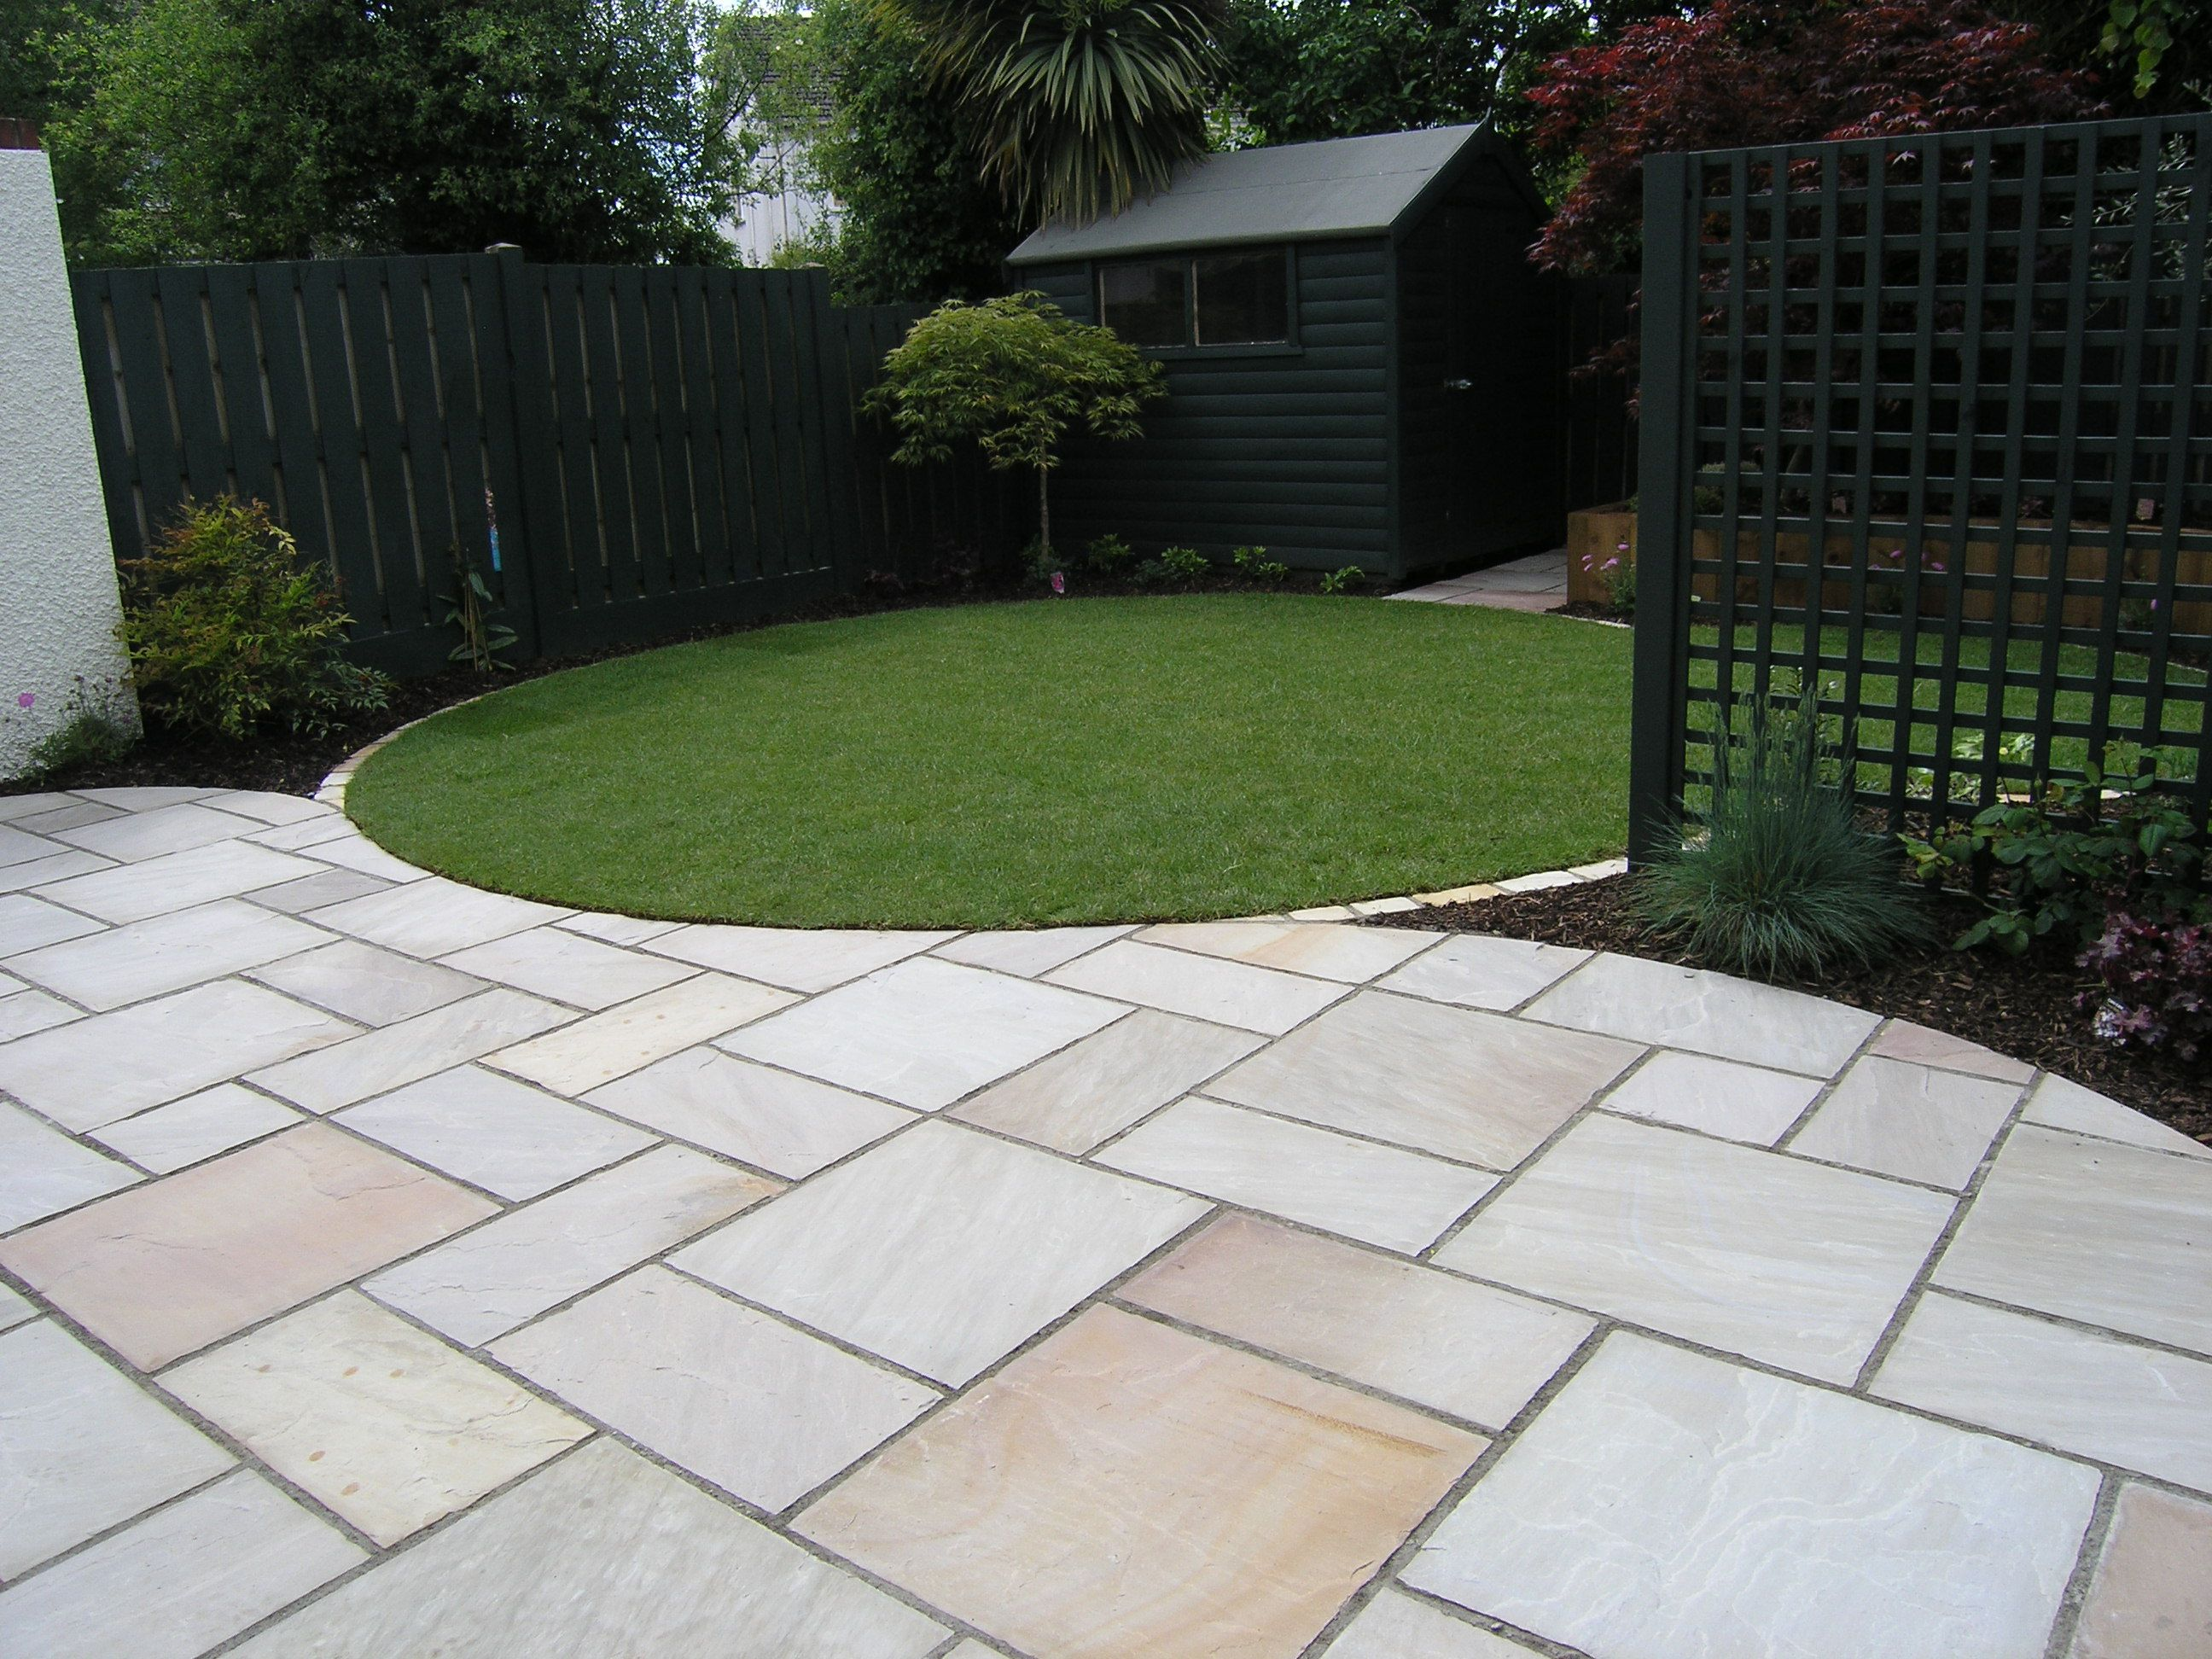 17 Best 1000 images about Paving on Pinterest Gardens Patio and